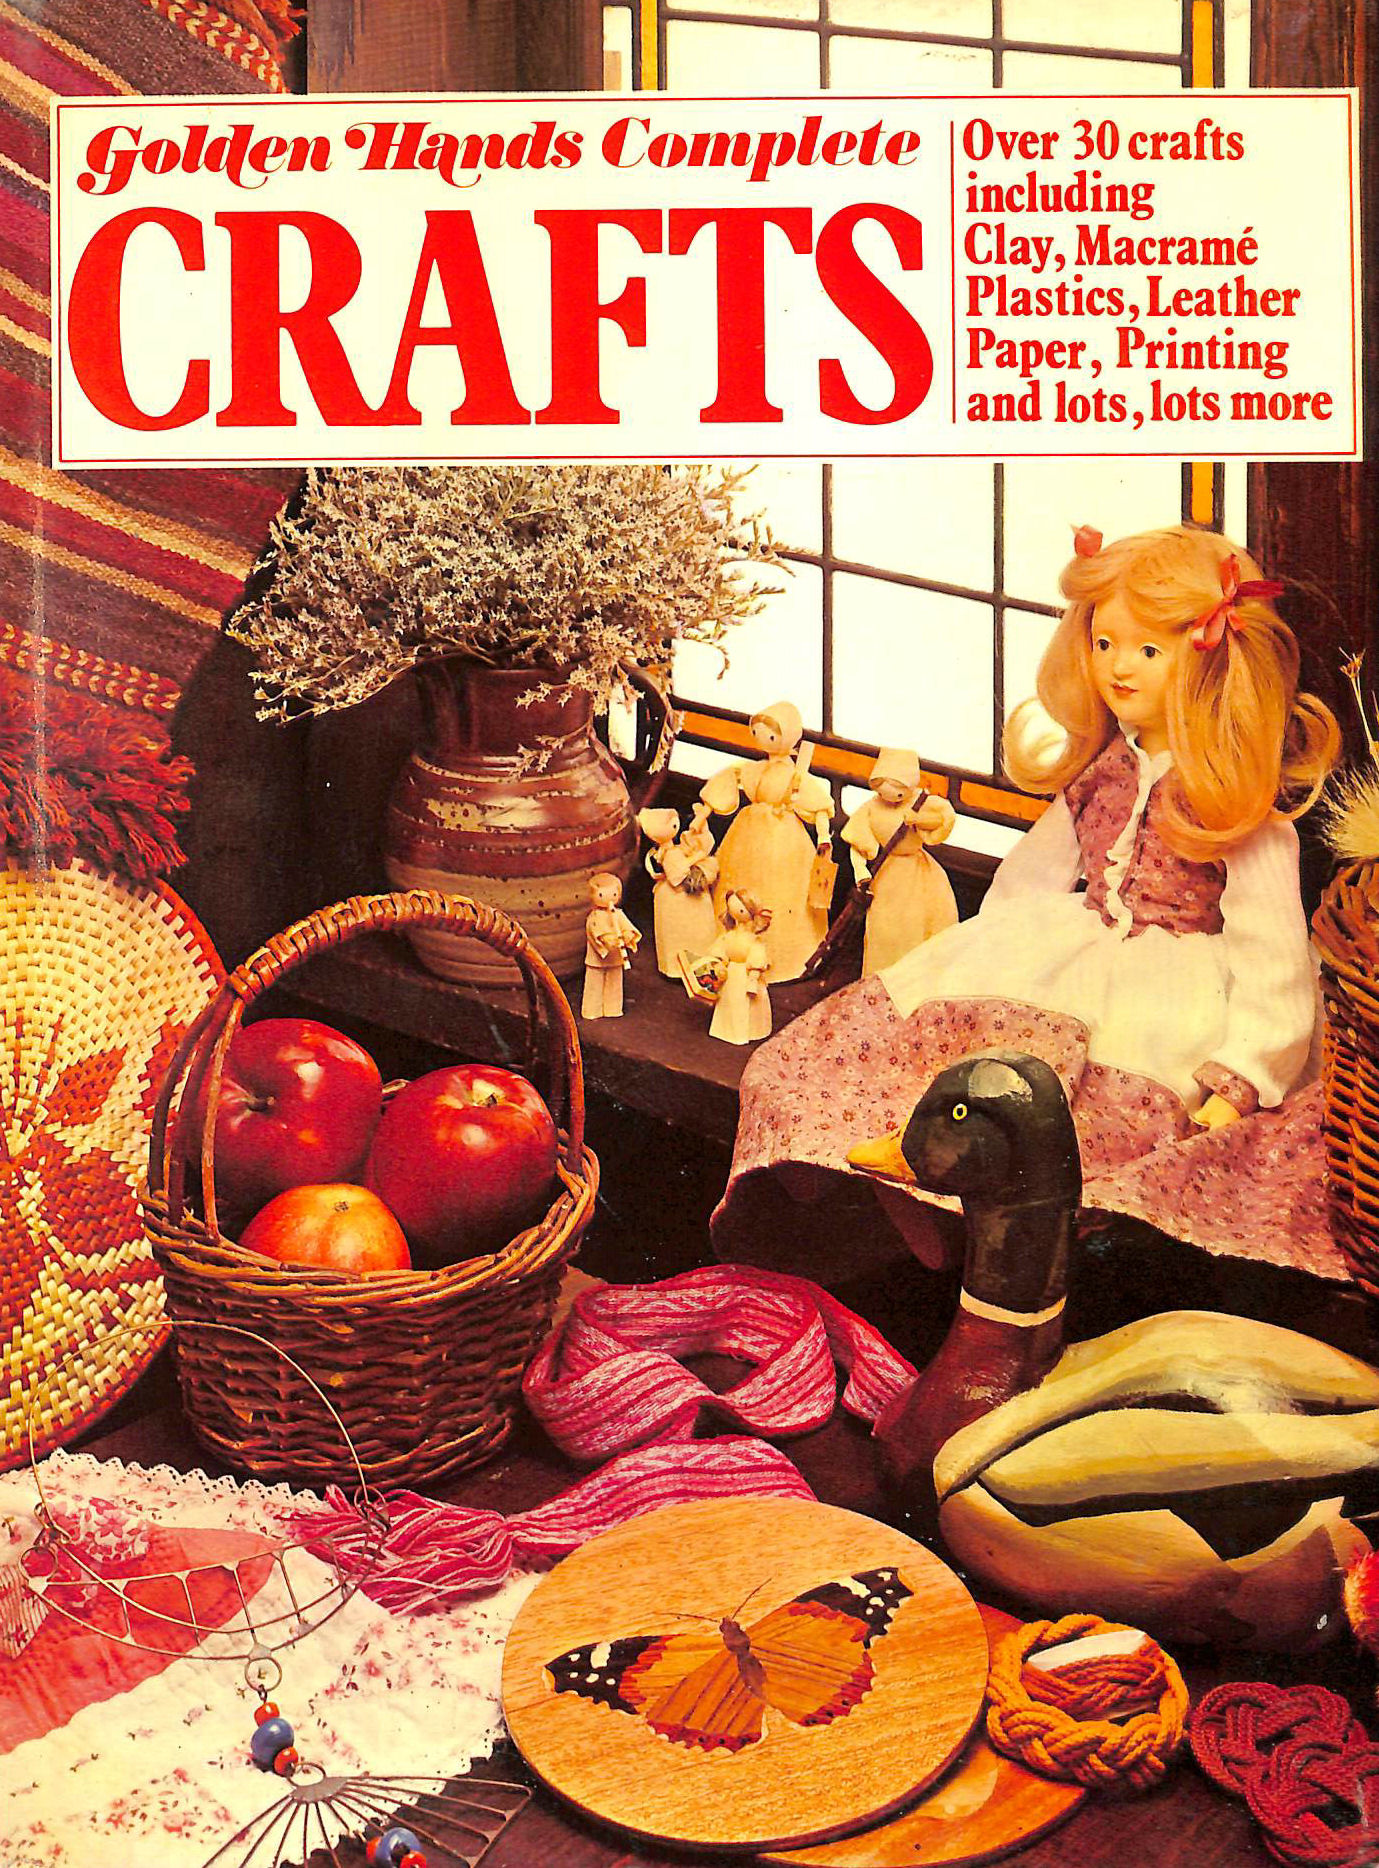 Image for Complete Book of Crafts: Over 30 crafts including Clay, Macrame, Plastics, Leather, Paper, Printing and lots more